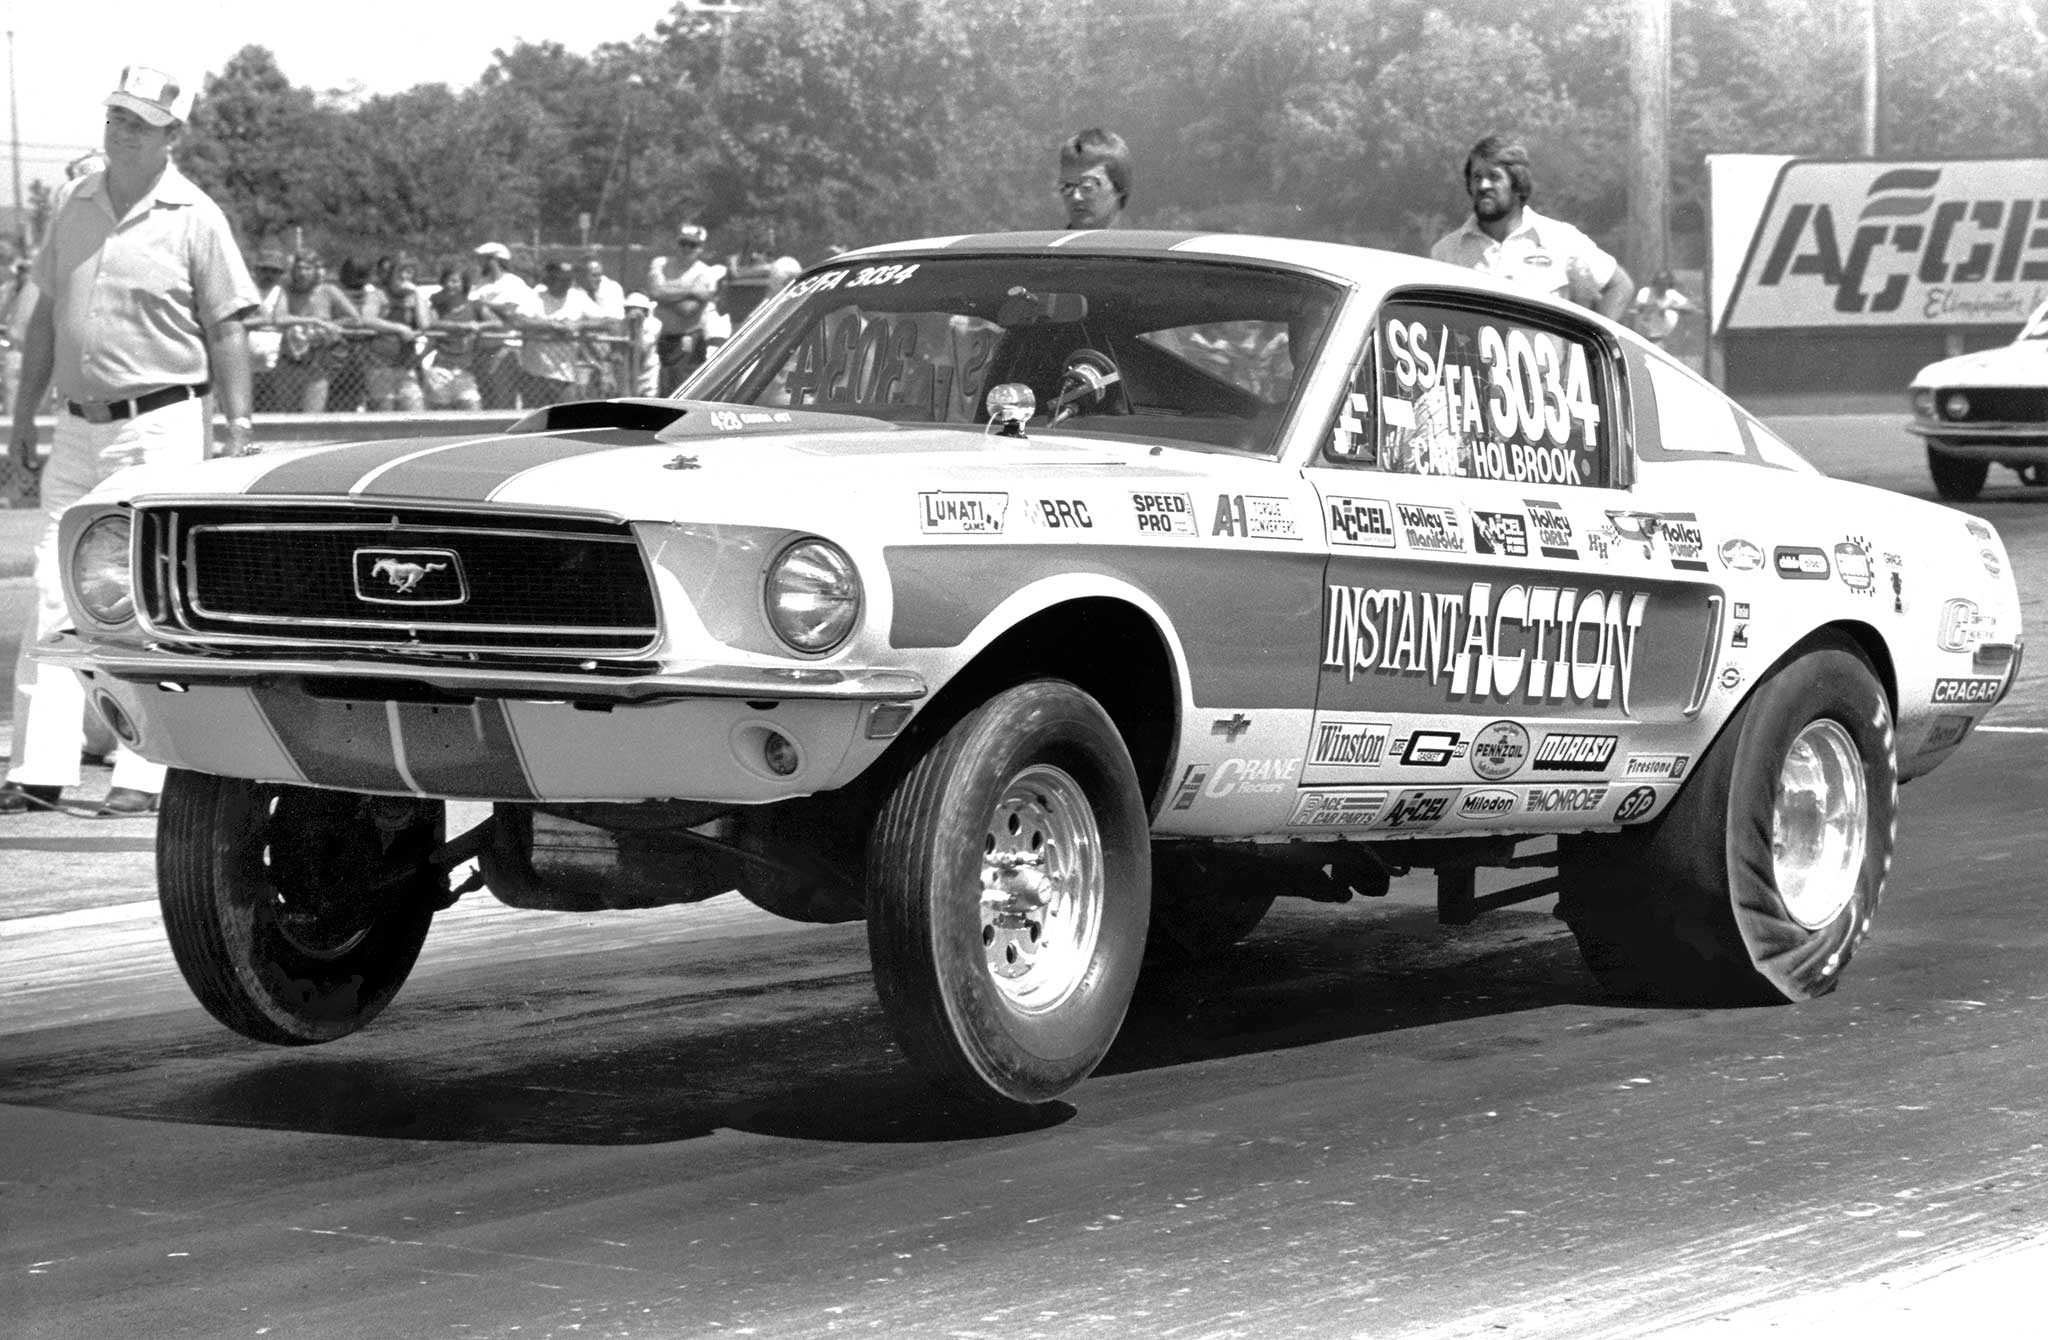 Carl Holbrook began racing on the East Coast and then moved to Detroit in the 1960s. This 428 Cobra Jet set several NHRA class records. Holbrook's son, Chris, continues Carl's legacy with a busy race car and engine shop in the Detroit area.